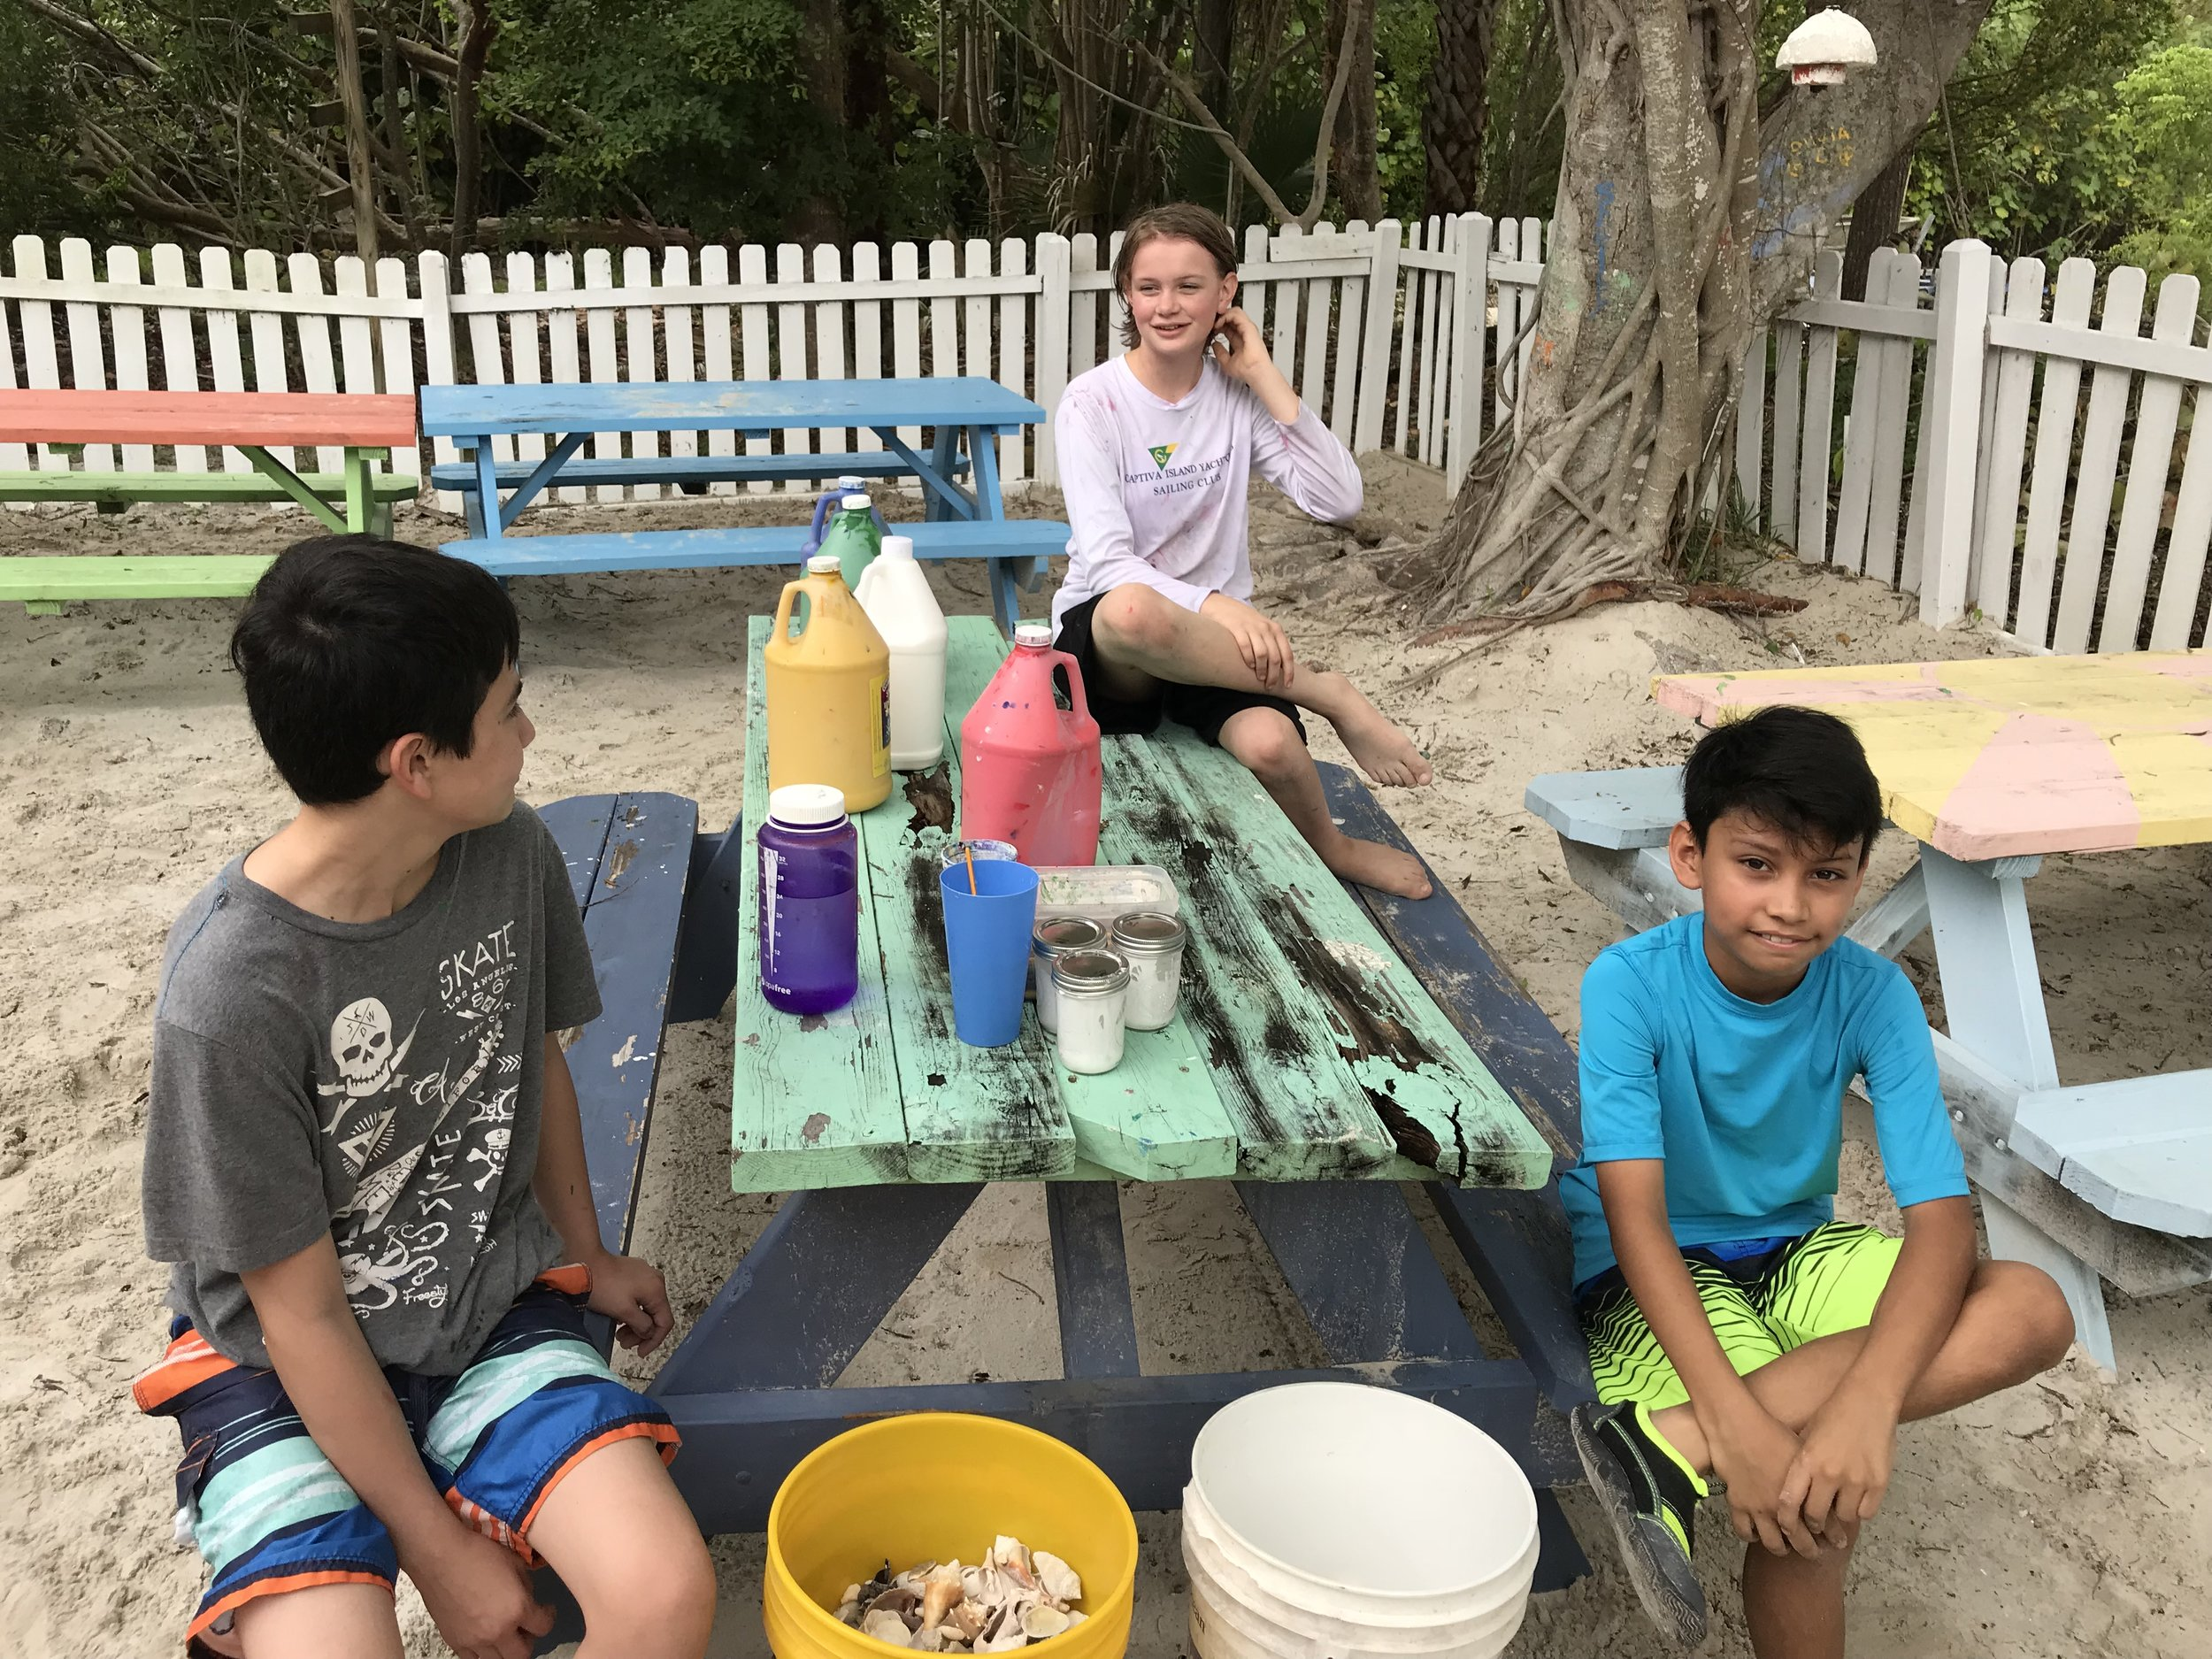 Campers prepared to make sea turtle art.